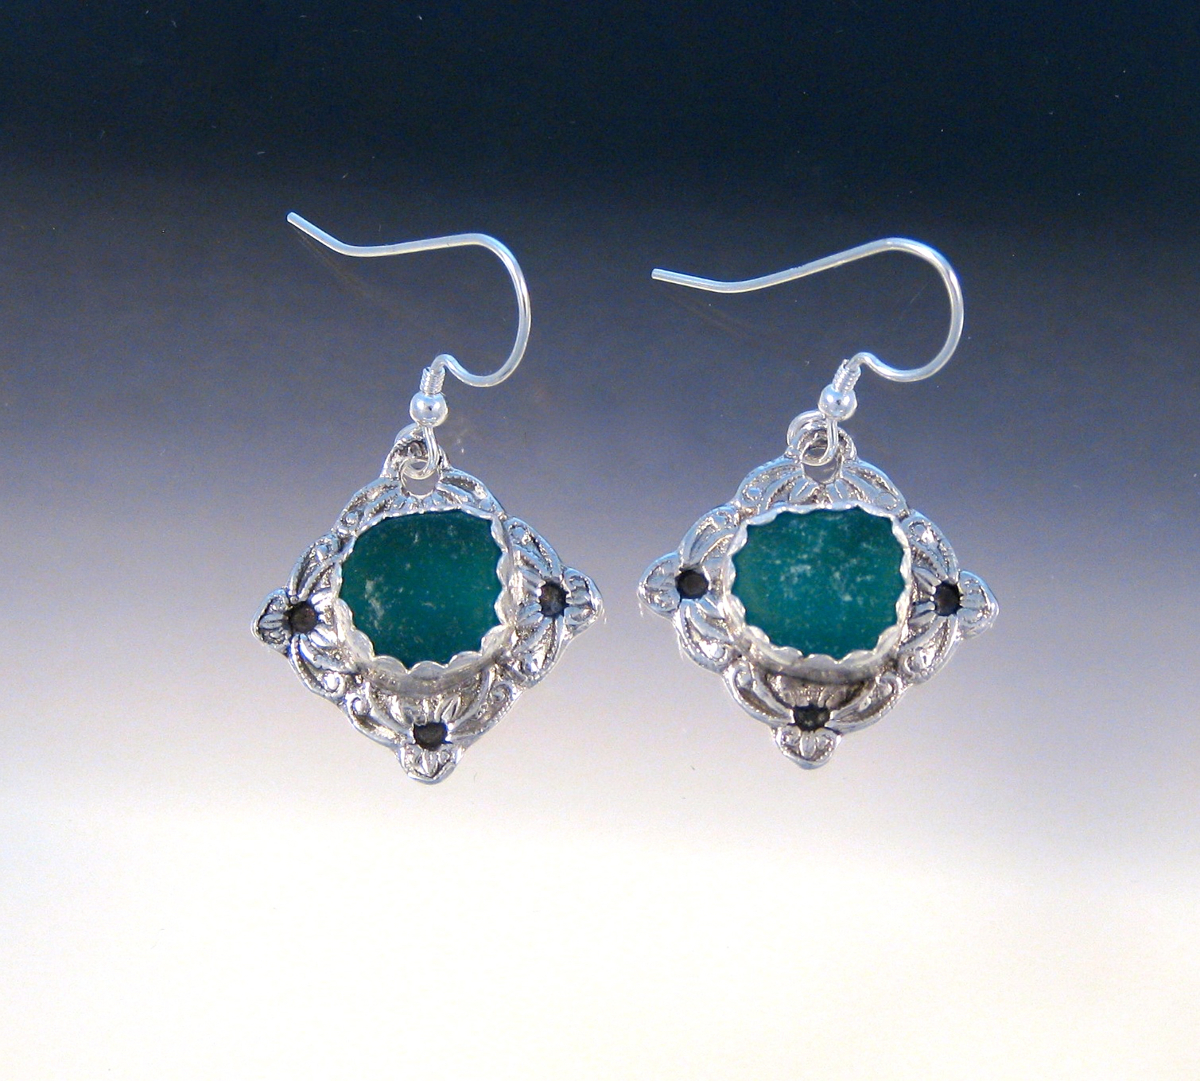 E978 - Teal in vintage button earrings (large view)